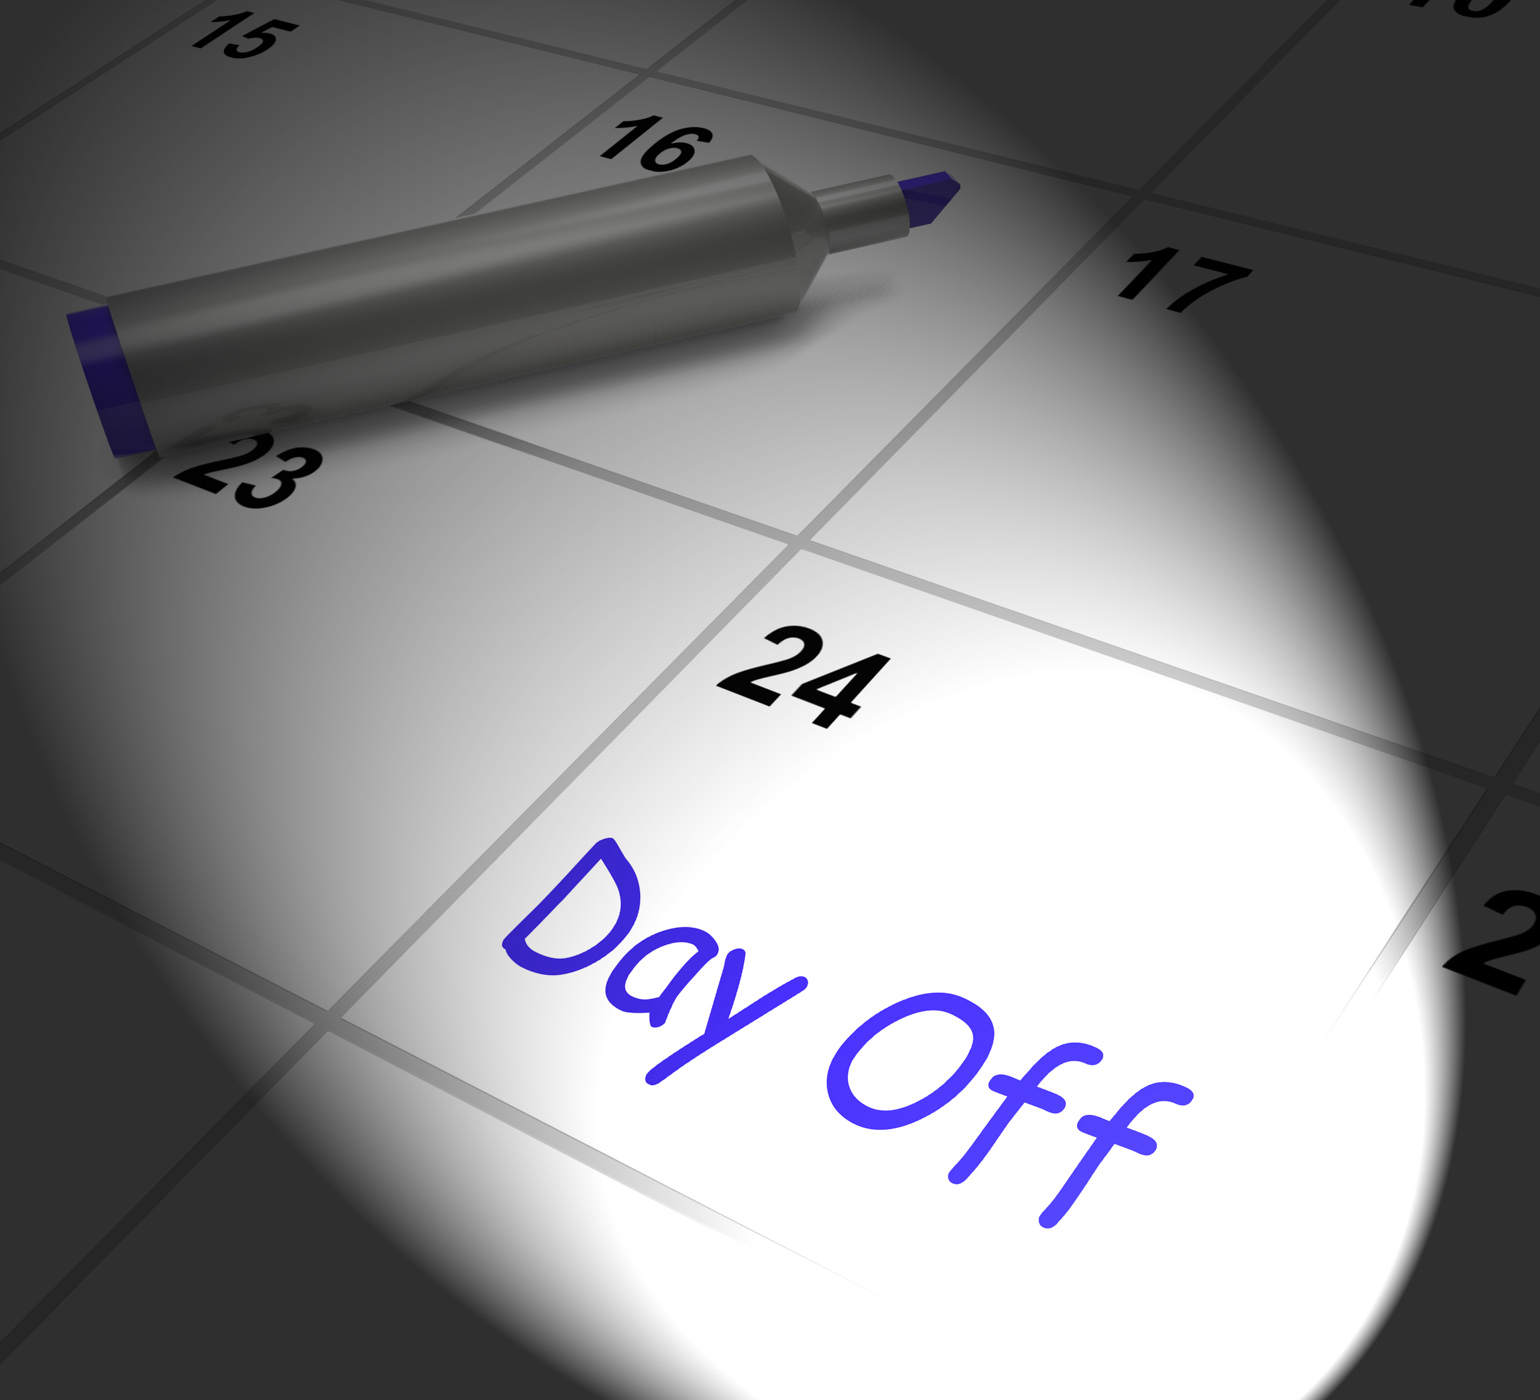 Day Off Calendar Displays Work Leave And Holiday, Break, Off, Vacation, Timeoff, HQ Photo